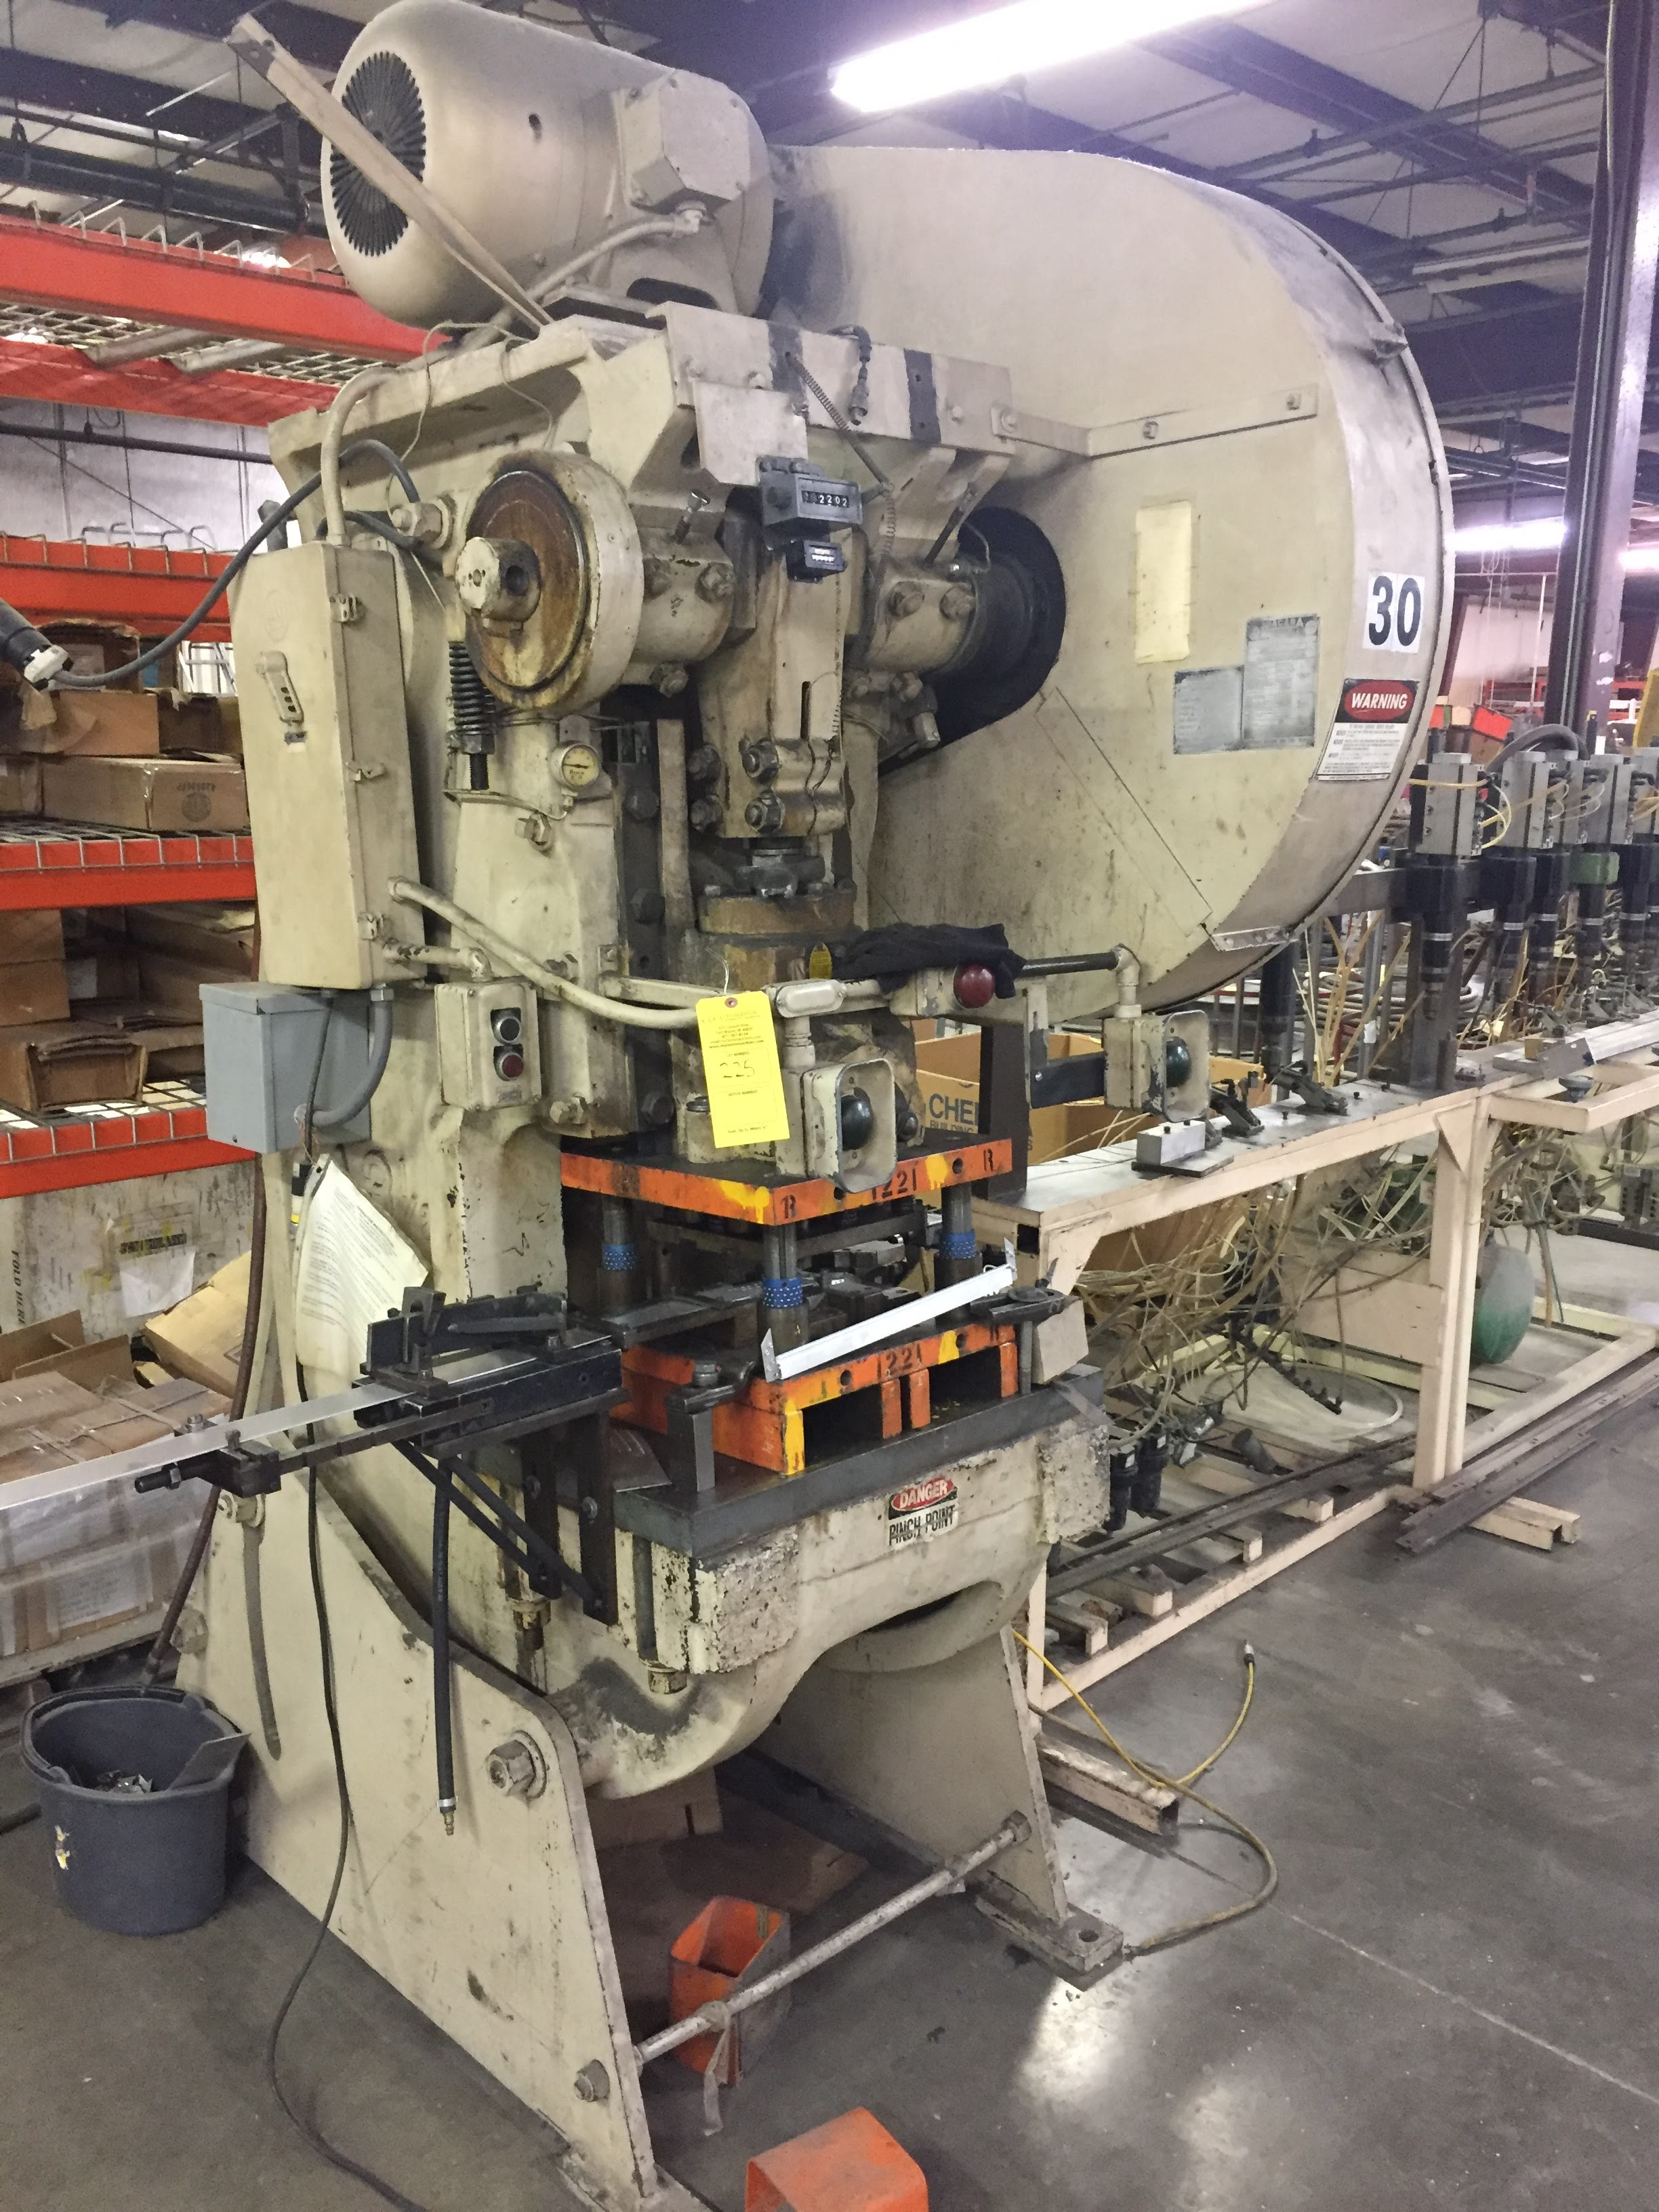 Charleston Auctions - International Industrial Auctioneers